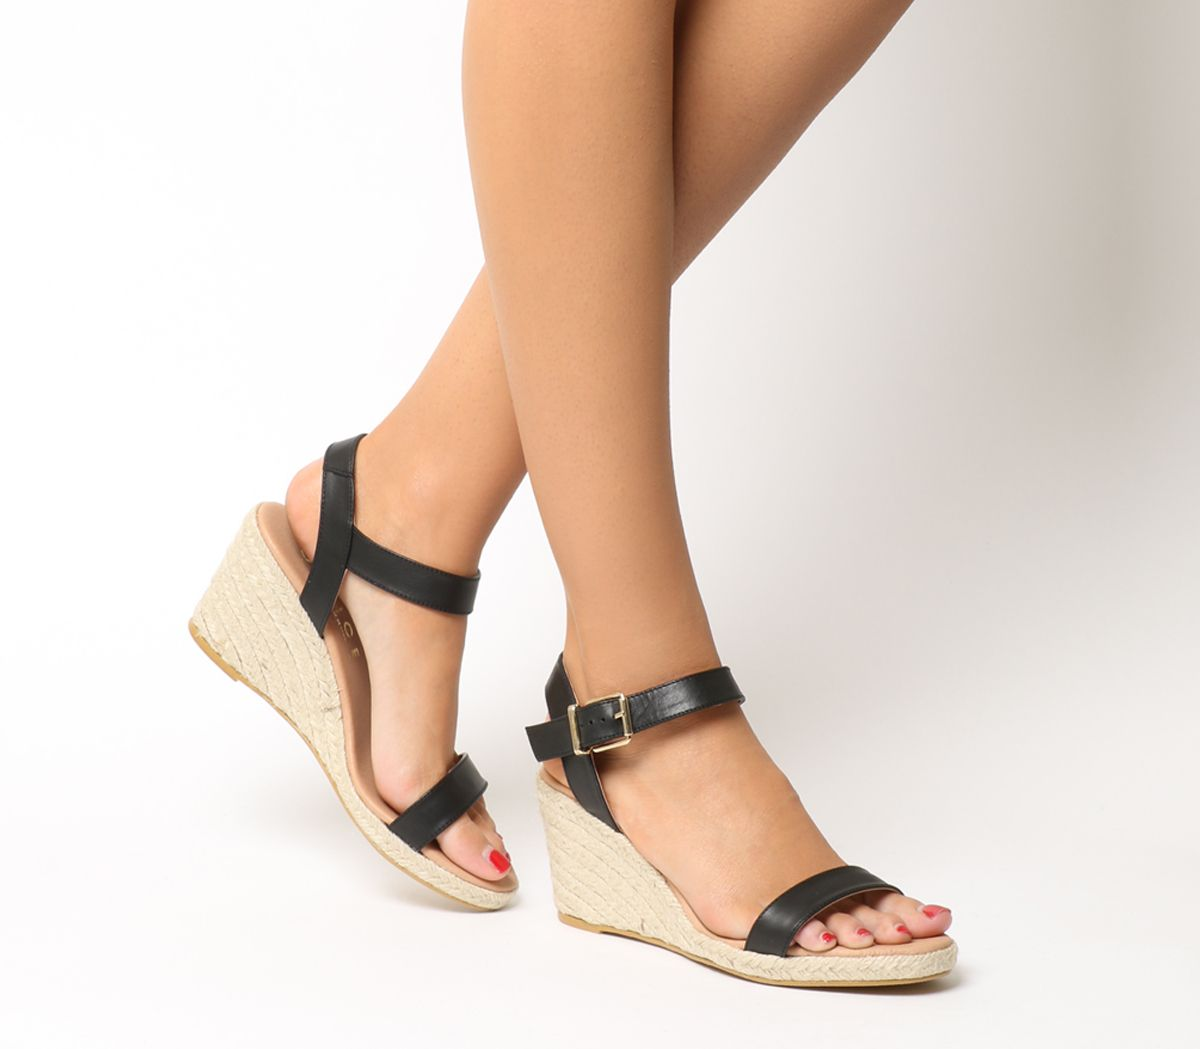 7a760b11d82f Office Mouse Espadrille Wedges Black Leather Natural Heel - Mid Heels